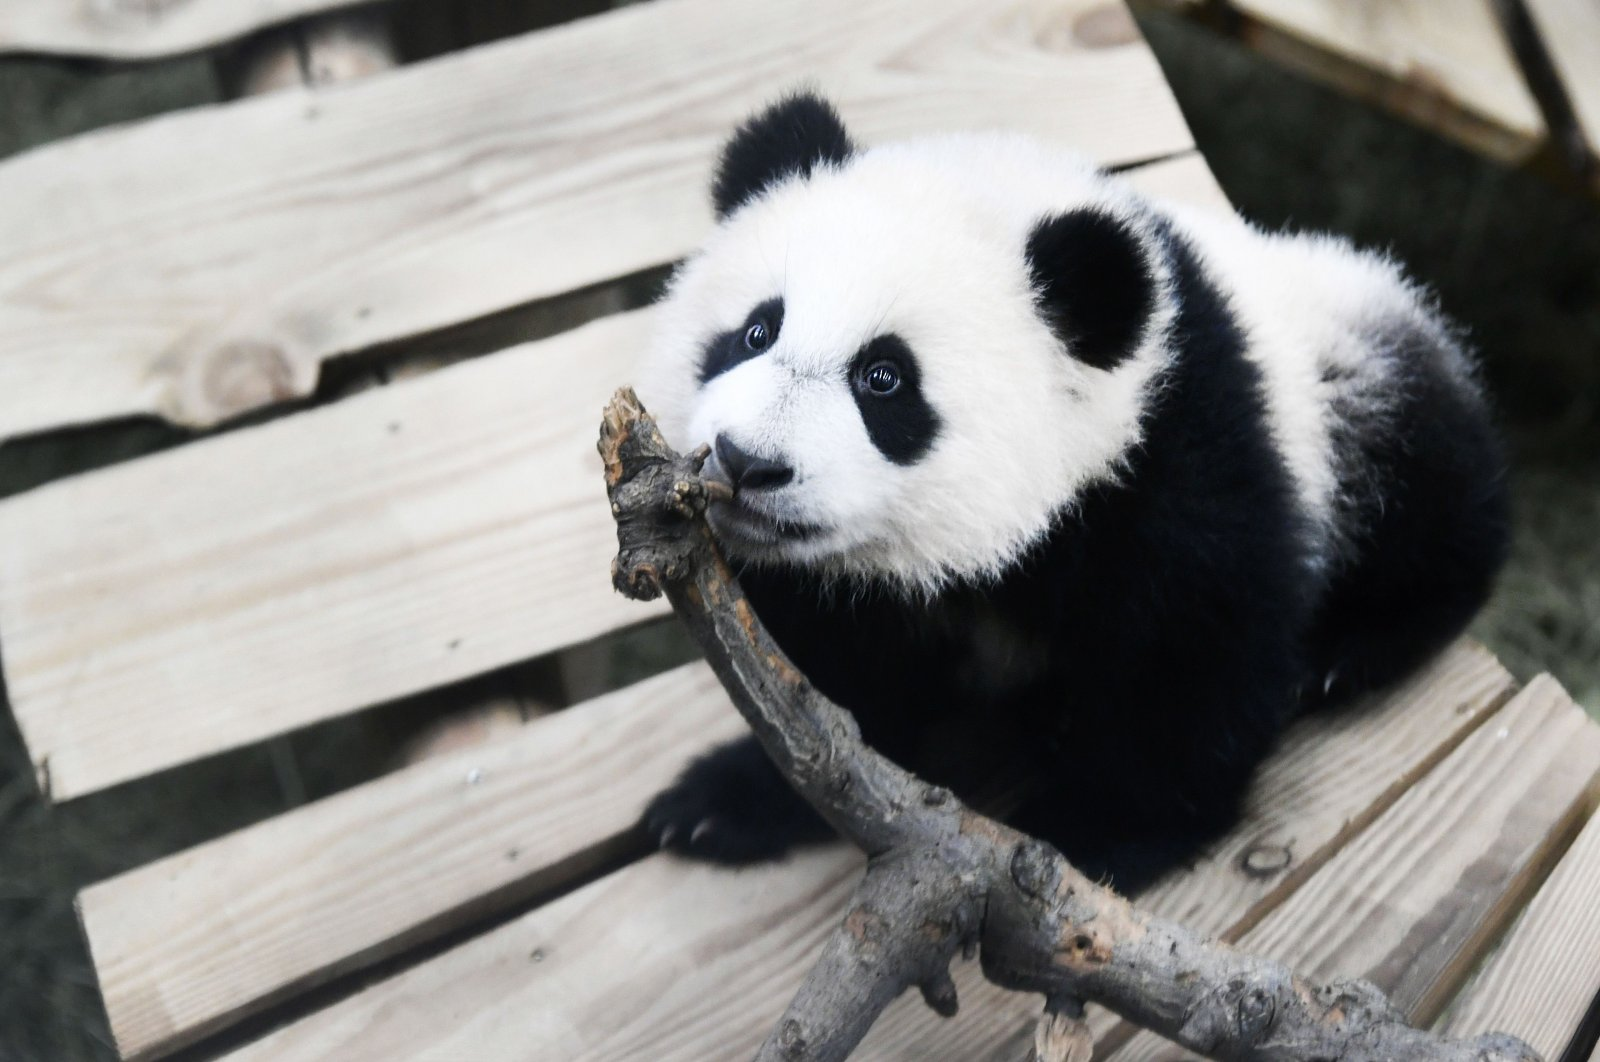 Fan Xing reacts in his indoor enclosure at Ouwehands Zoo in Rhenen, The Netherlands, on Nov. 19, 2020. (AFP Photo)